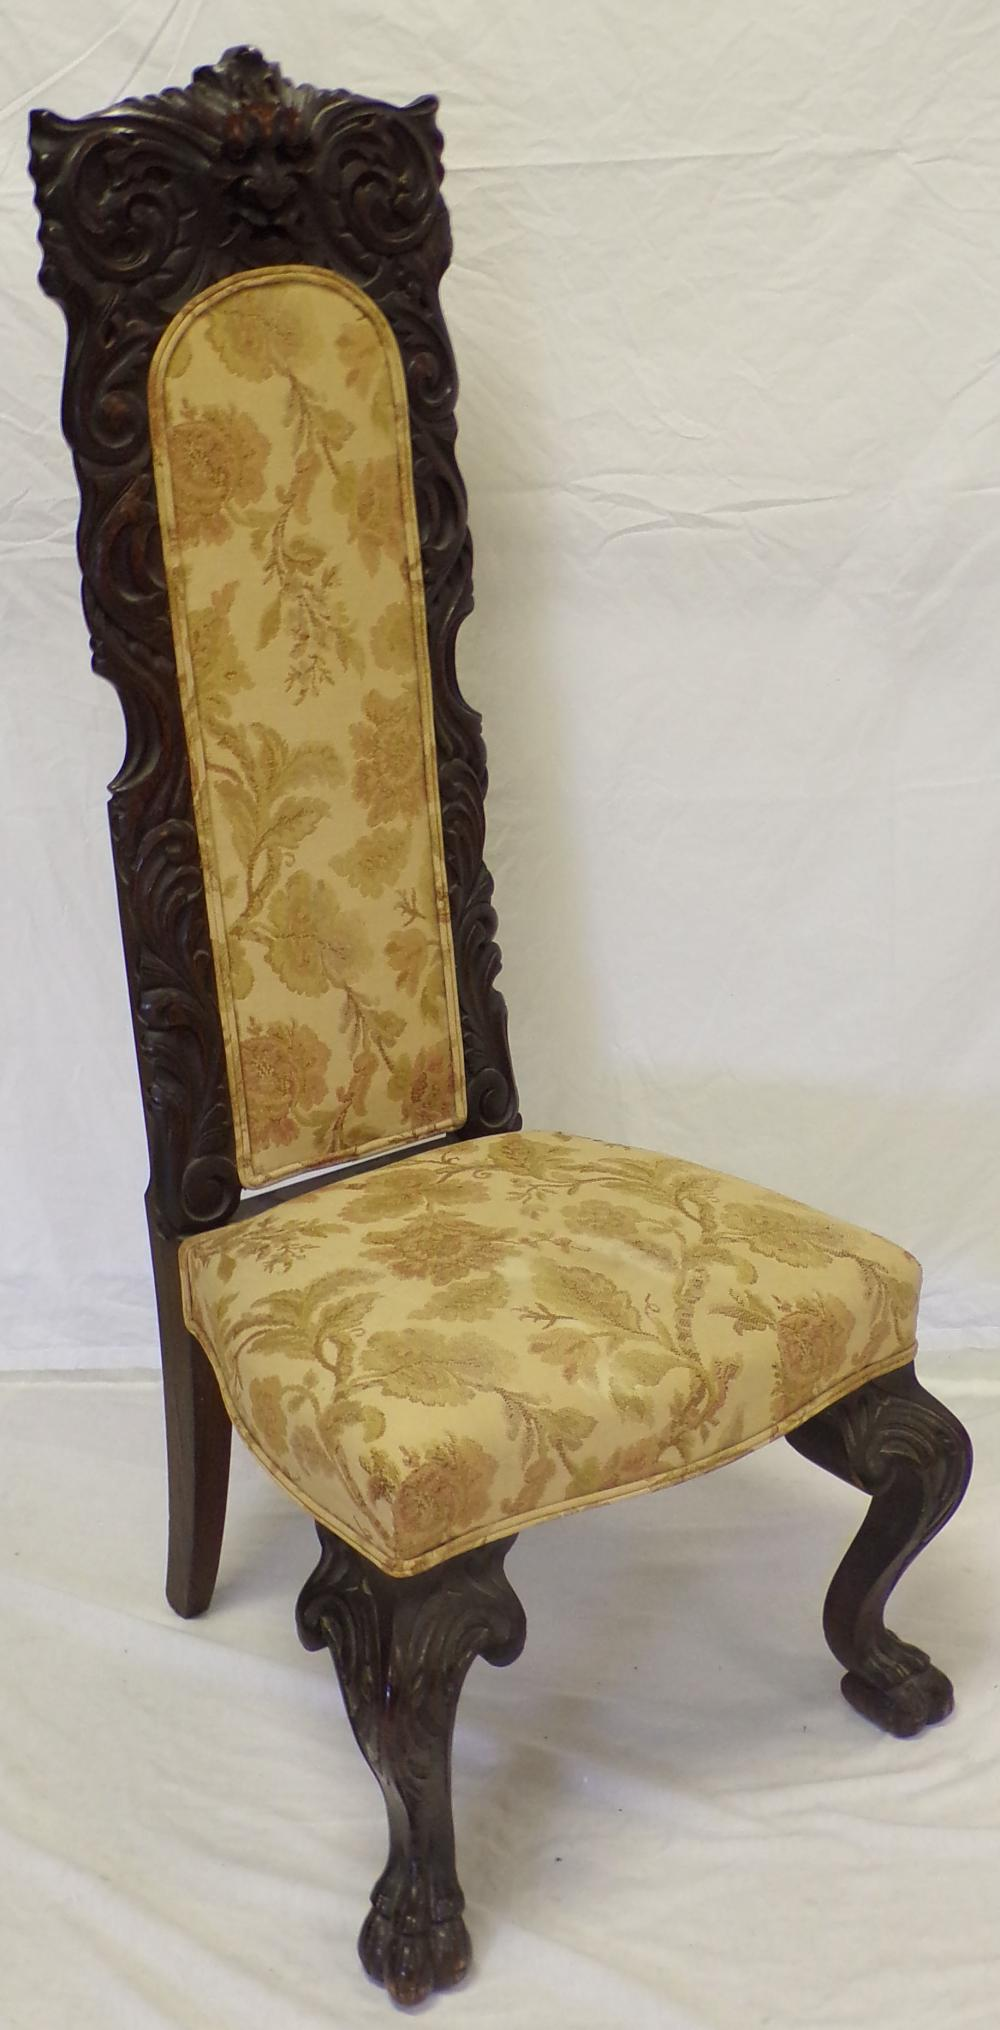 Late 19th/early 20th century carved oak high back side chair